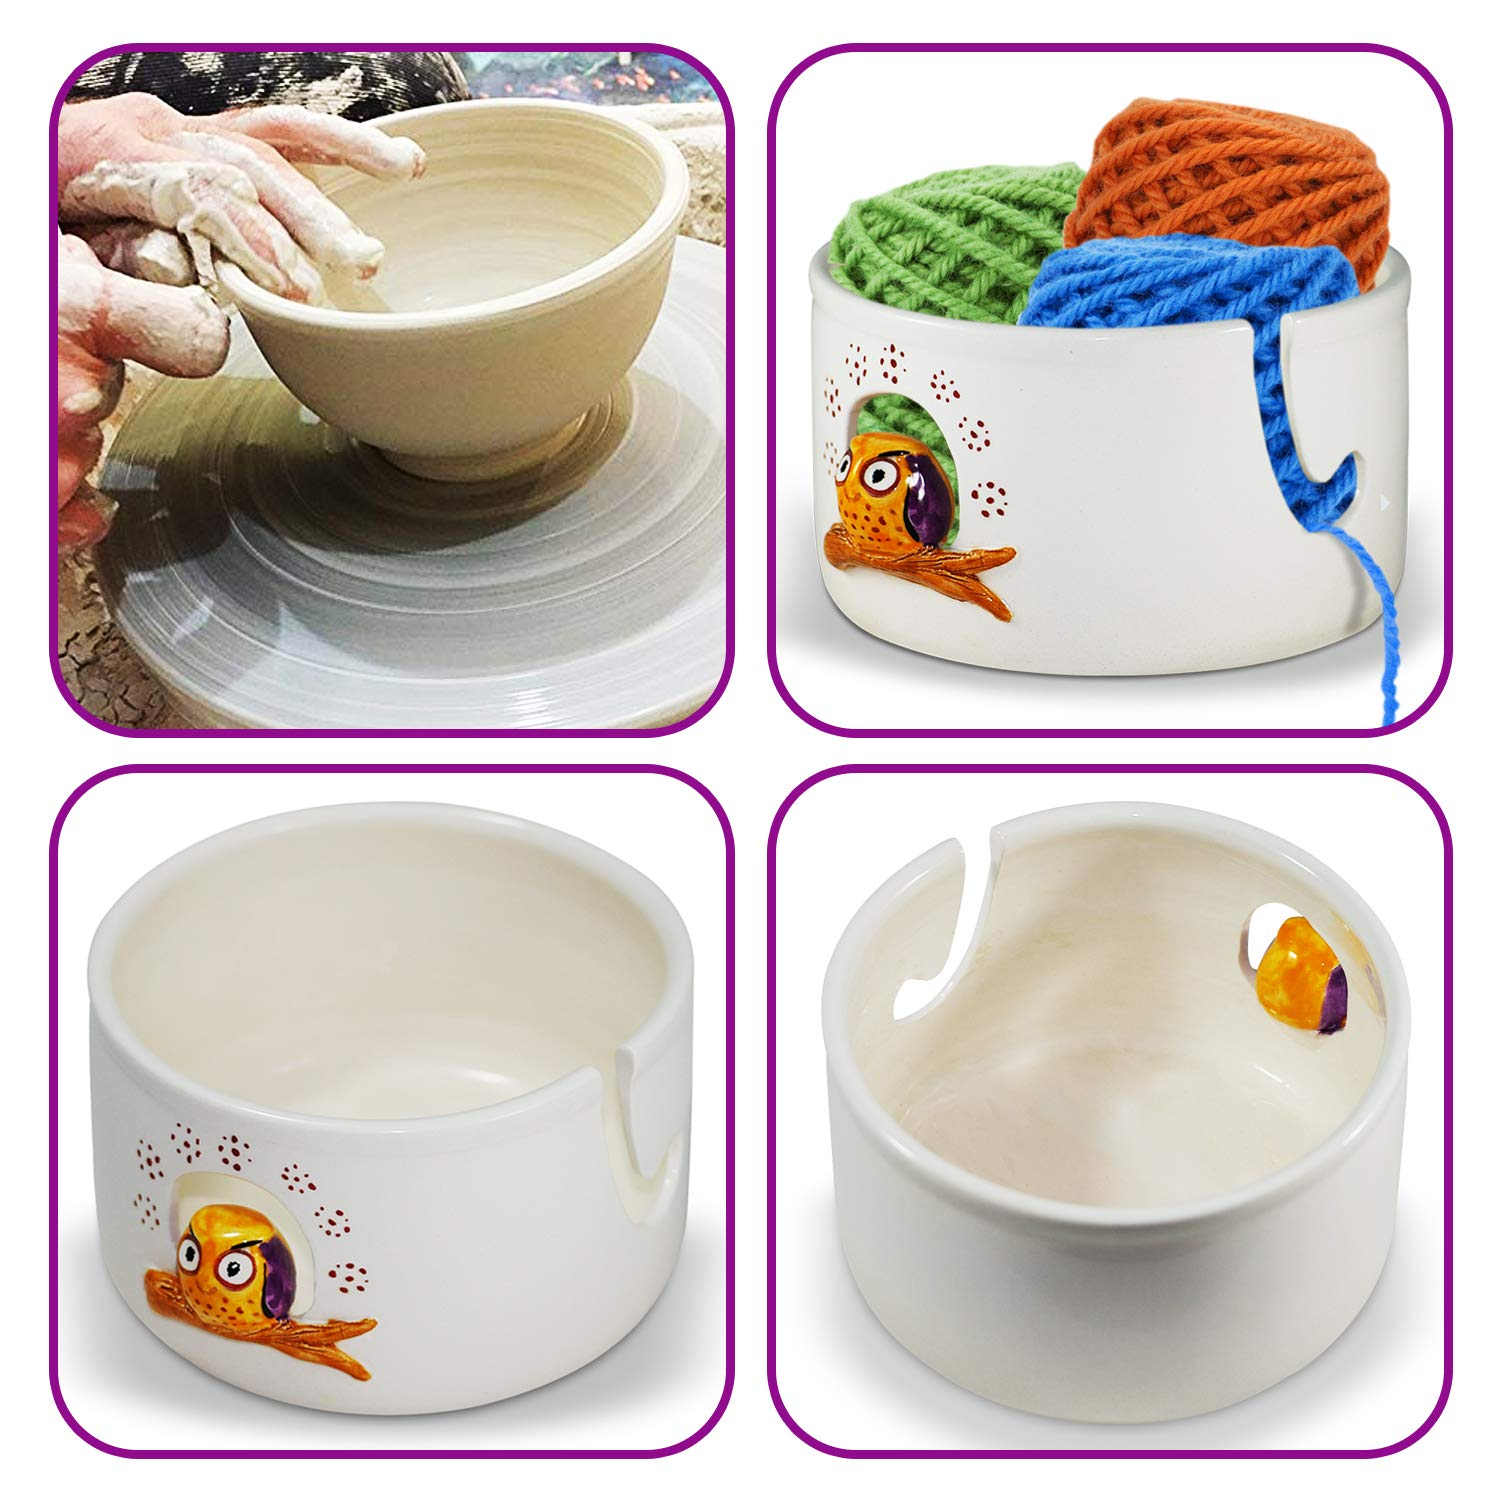 Ceramic Yarn Bowl for Crochet - Handmade Pottery Knitting Bowl Storage & Travel Pouch - Ceramic Owl Crochet Storage Organizer, Yarn Holder for Knitting and Crochet with Yarn Pouch